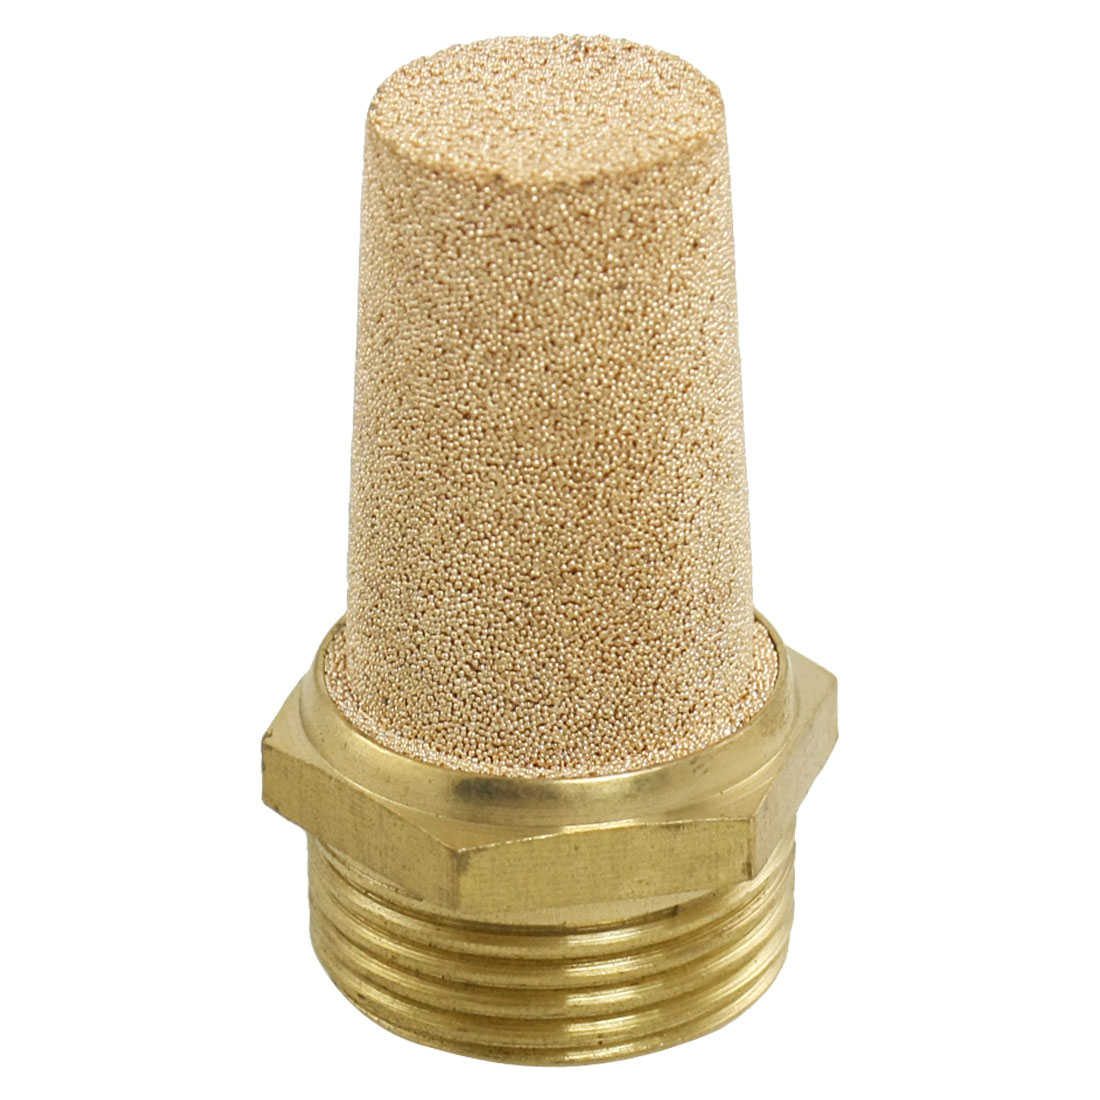 "3/4"" PT Male Thread Gold Tone Pneumatic Exhaust Noise Silencer Muffler"